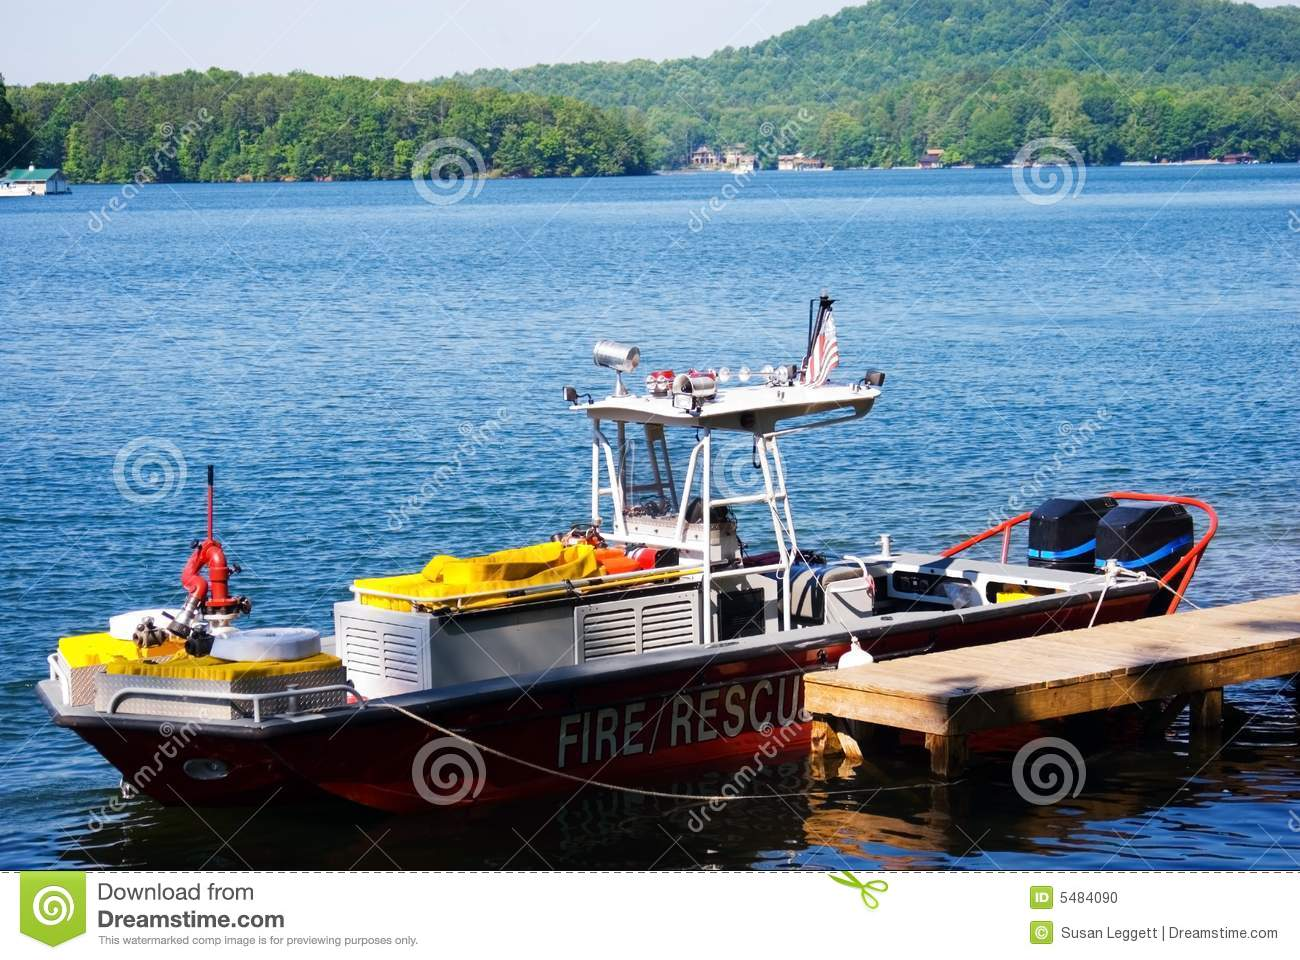 Fire and Rescue Boat at Marina